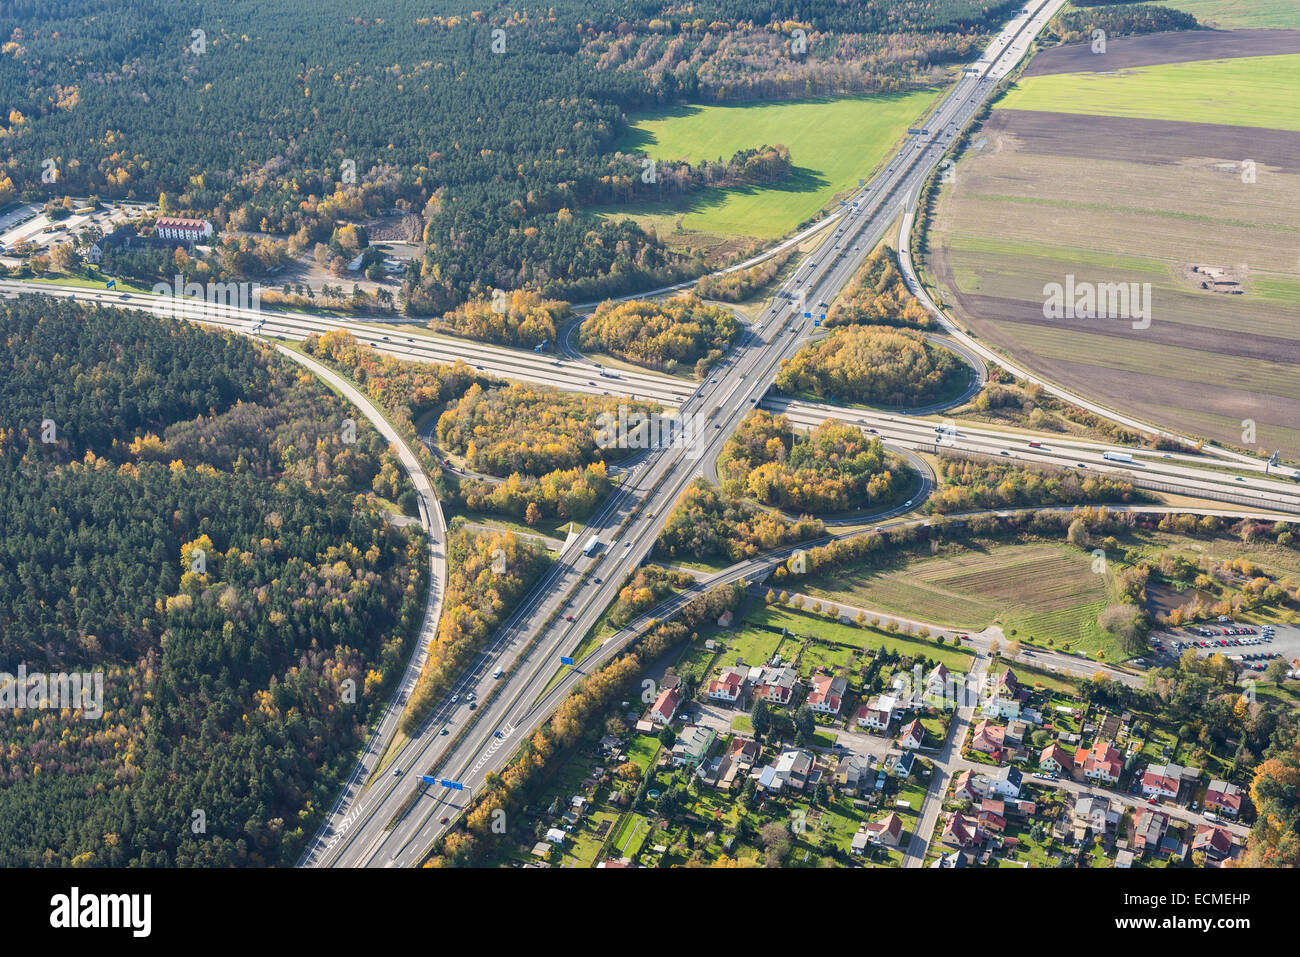 Aerial view, Hermsdorfer Kreuz, motorway junction, view from the east, junction of the A4 motorway and the A9 motorway - Stock Image